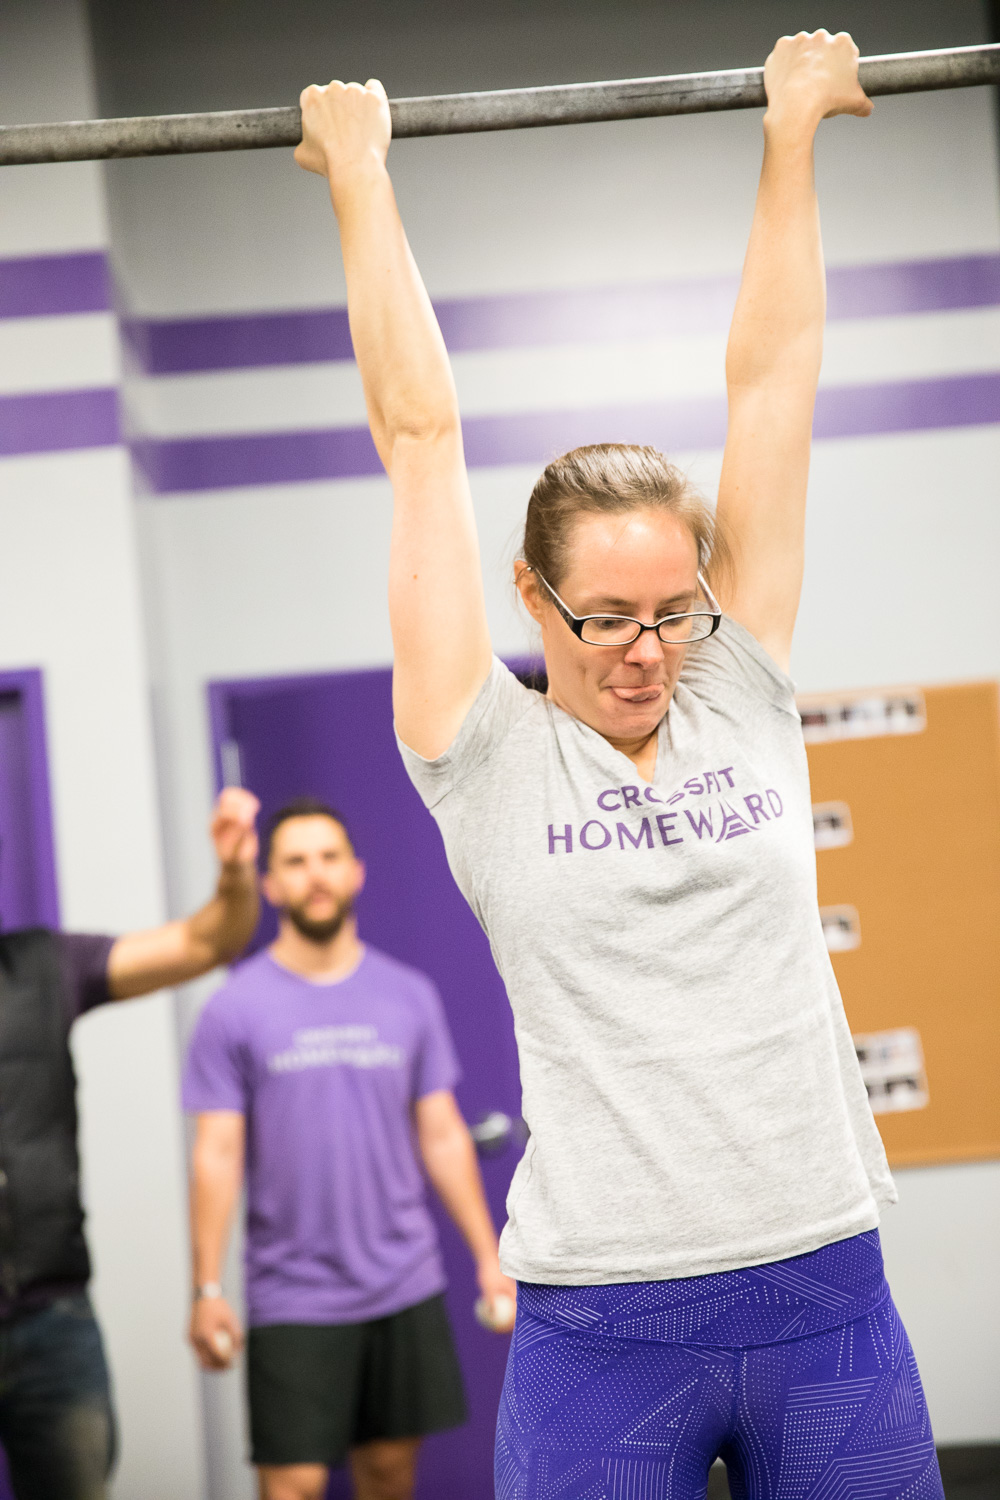 crossfit_homeward-93.jpg